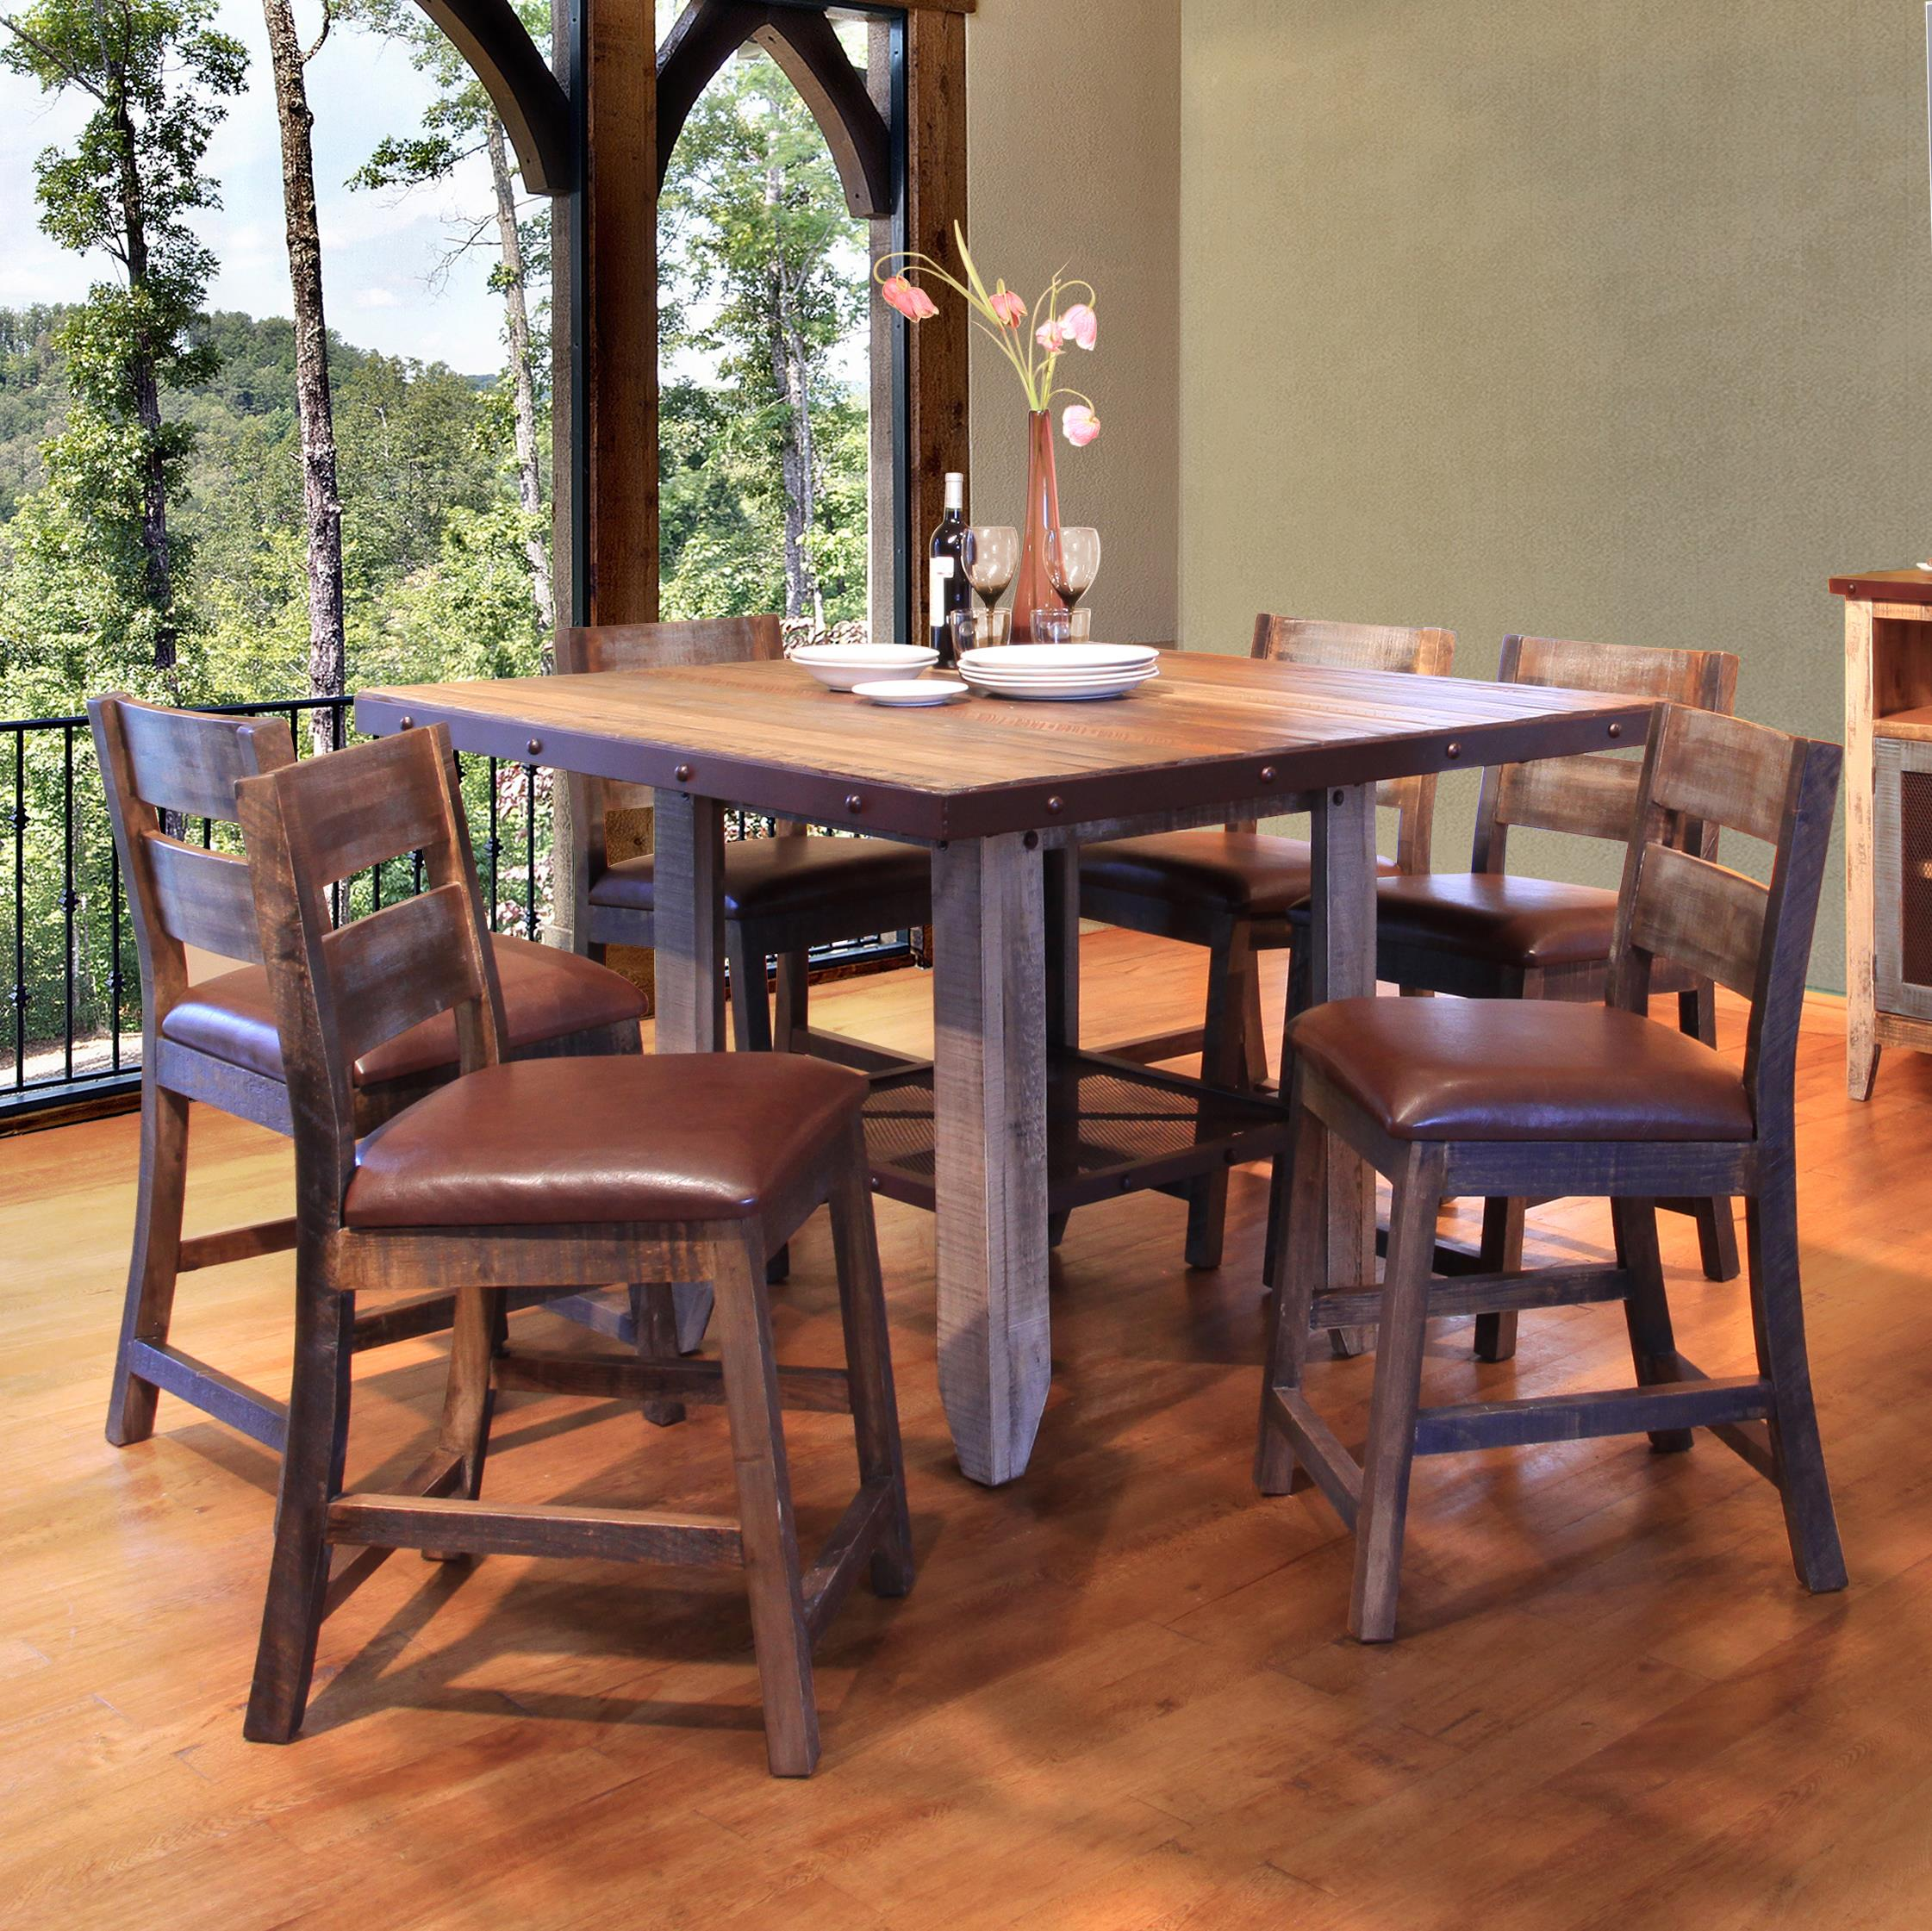 "900 Antique 52"" Counter Height Dining Table Set by International Furniture Direct at Upper Room Home Furnishings"